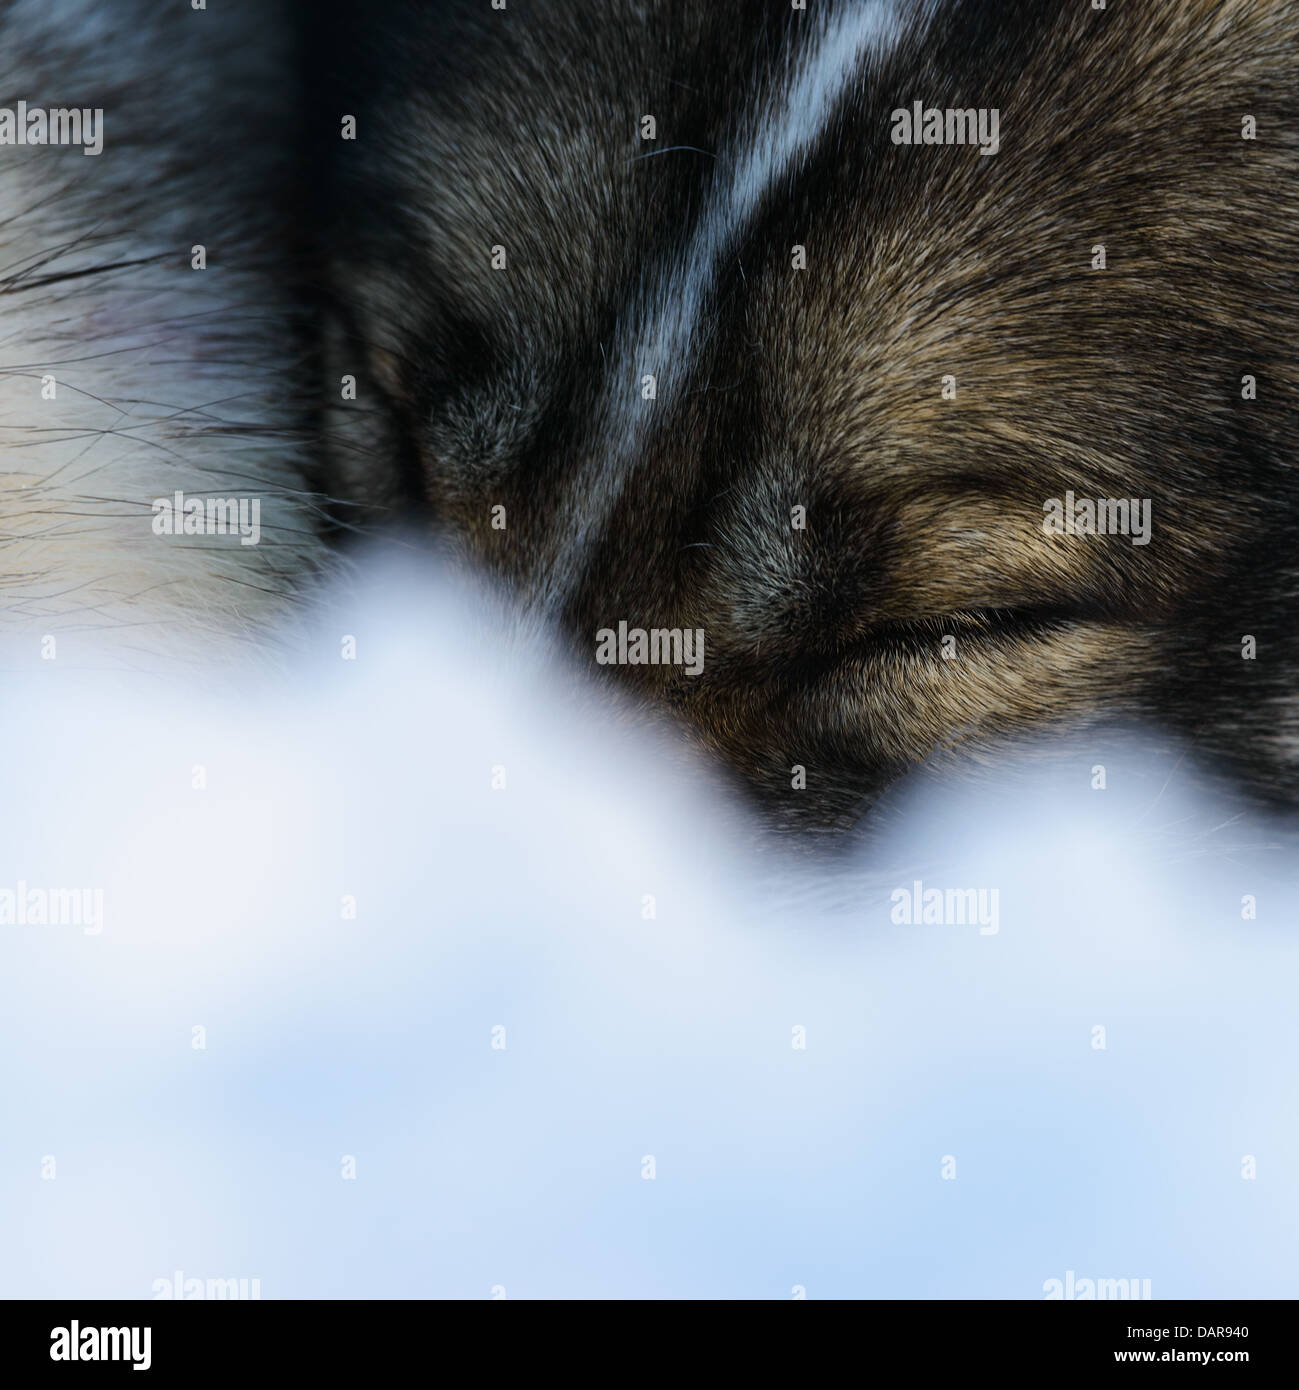 Siberian Husky sleeping, close-up - Stock Image